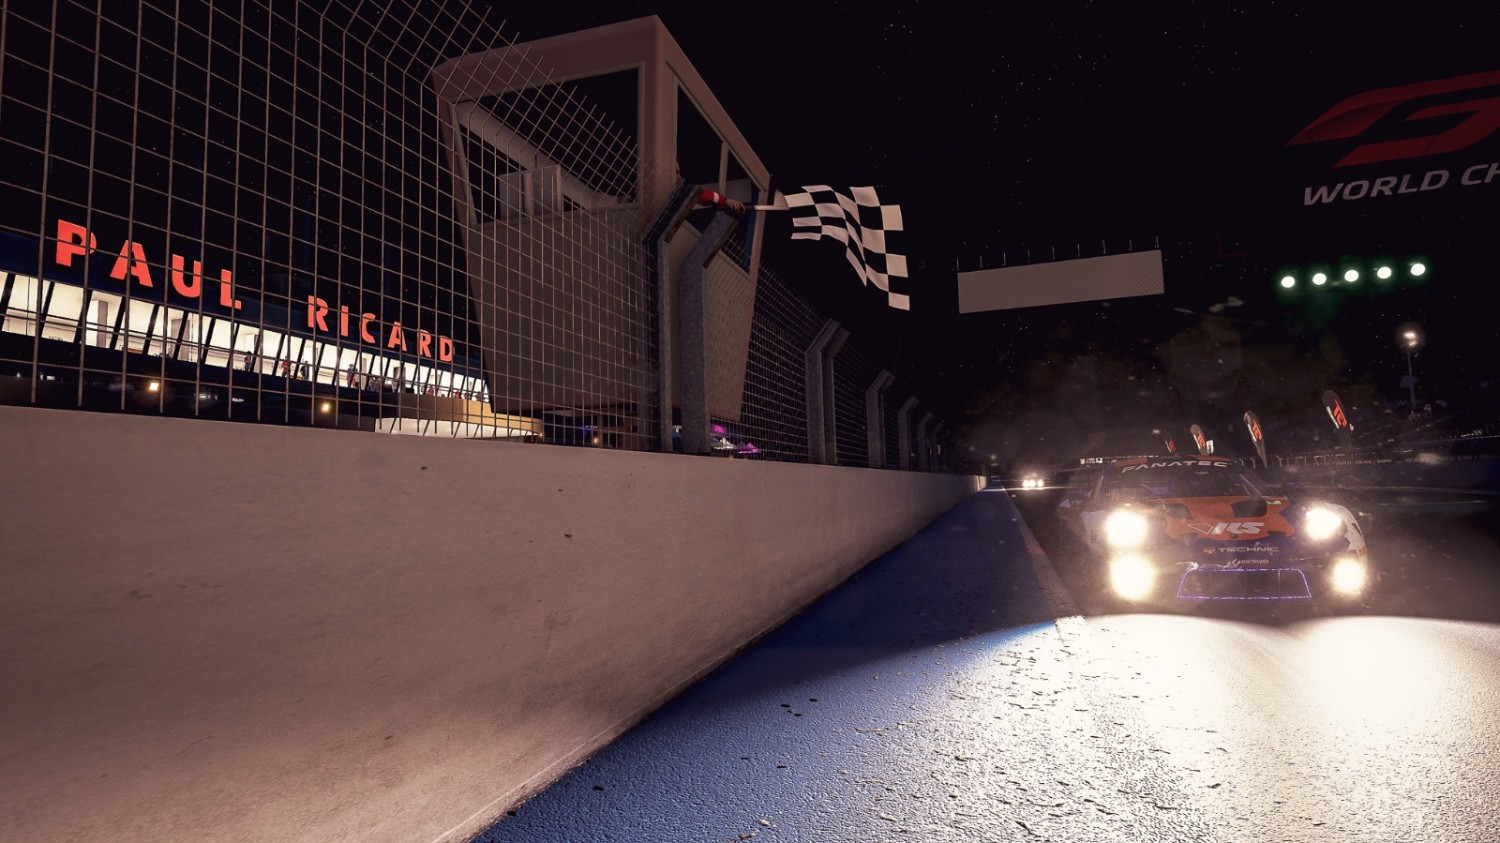 ESPORTS: VRS Coanda Simsport Porsche crushes the opposition in six-hour GT World Challenge Europe Esports race at Circuit Paul Ricard